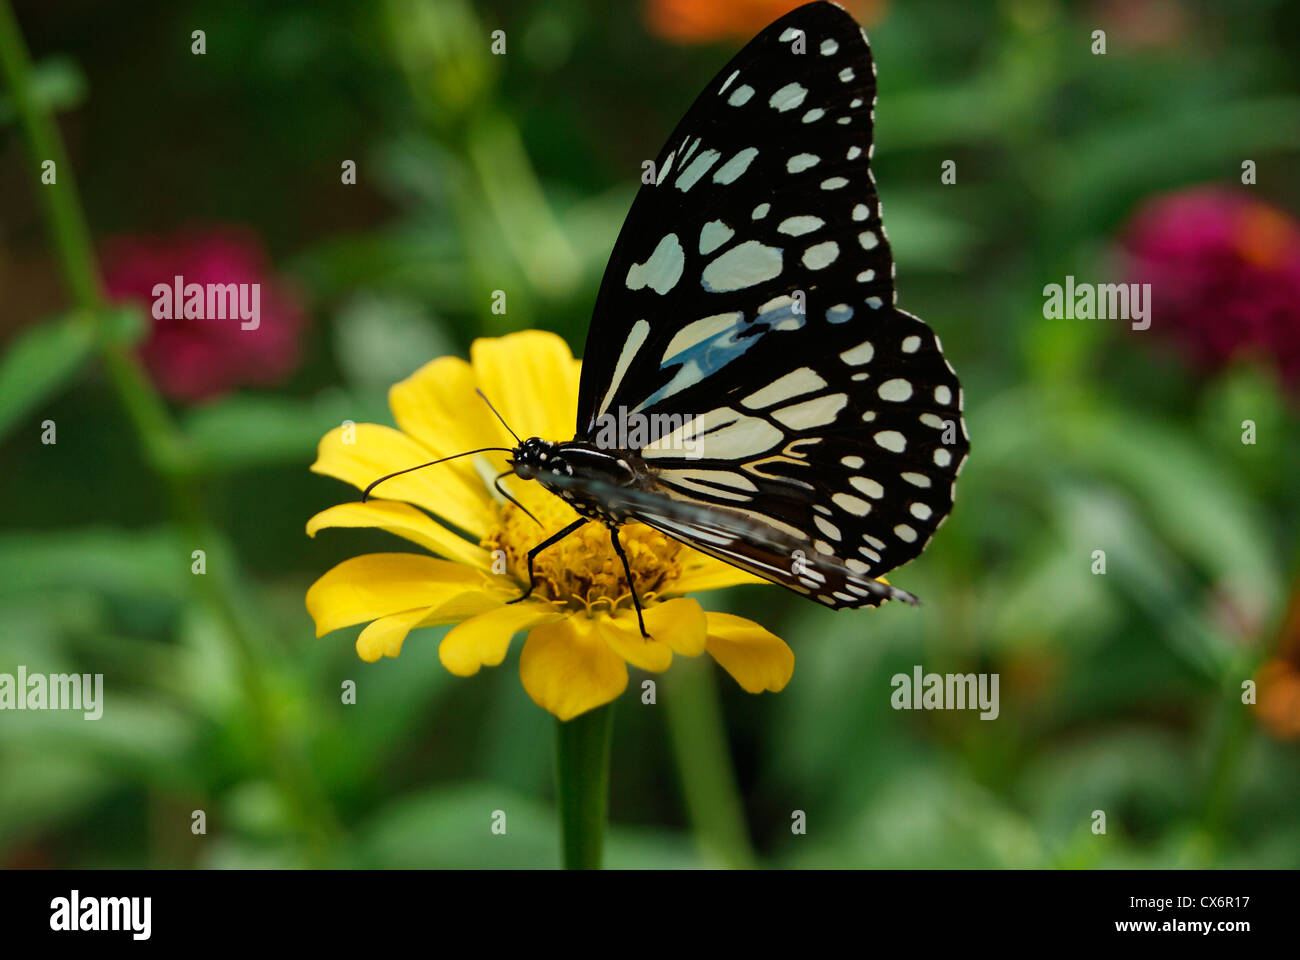 butterfly sitting on flower quotglassy tiger butterflyquot on